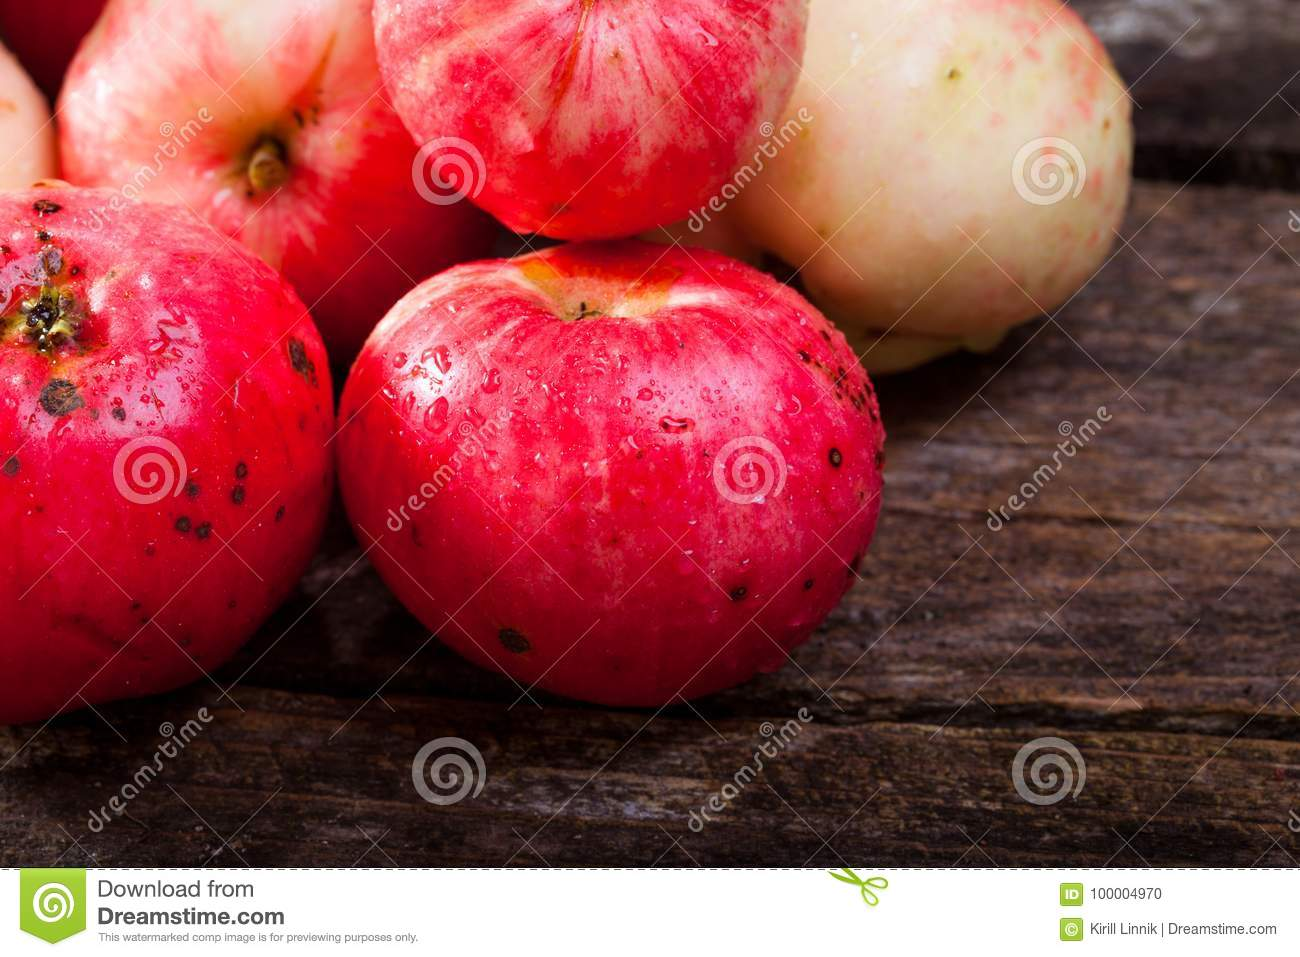 Download Red ripe apples stock photo. Image of rural, rustic - 100004970